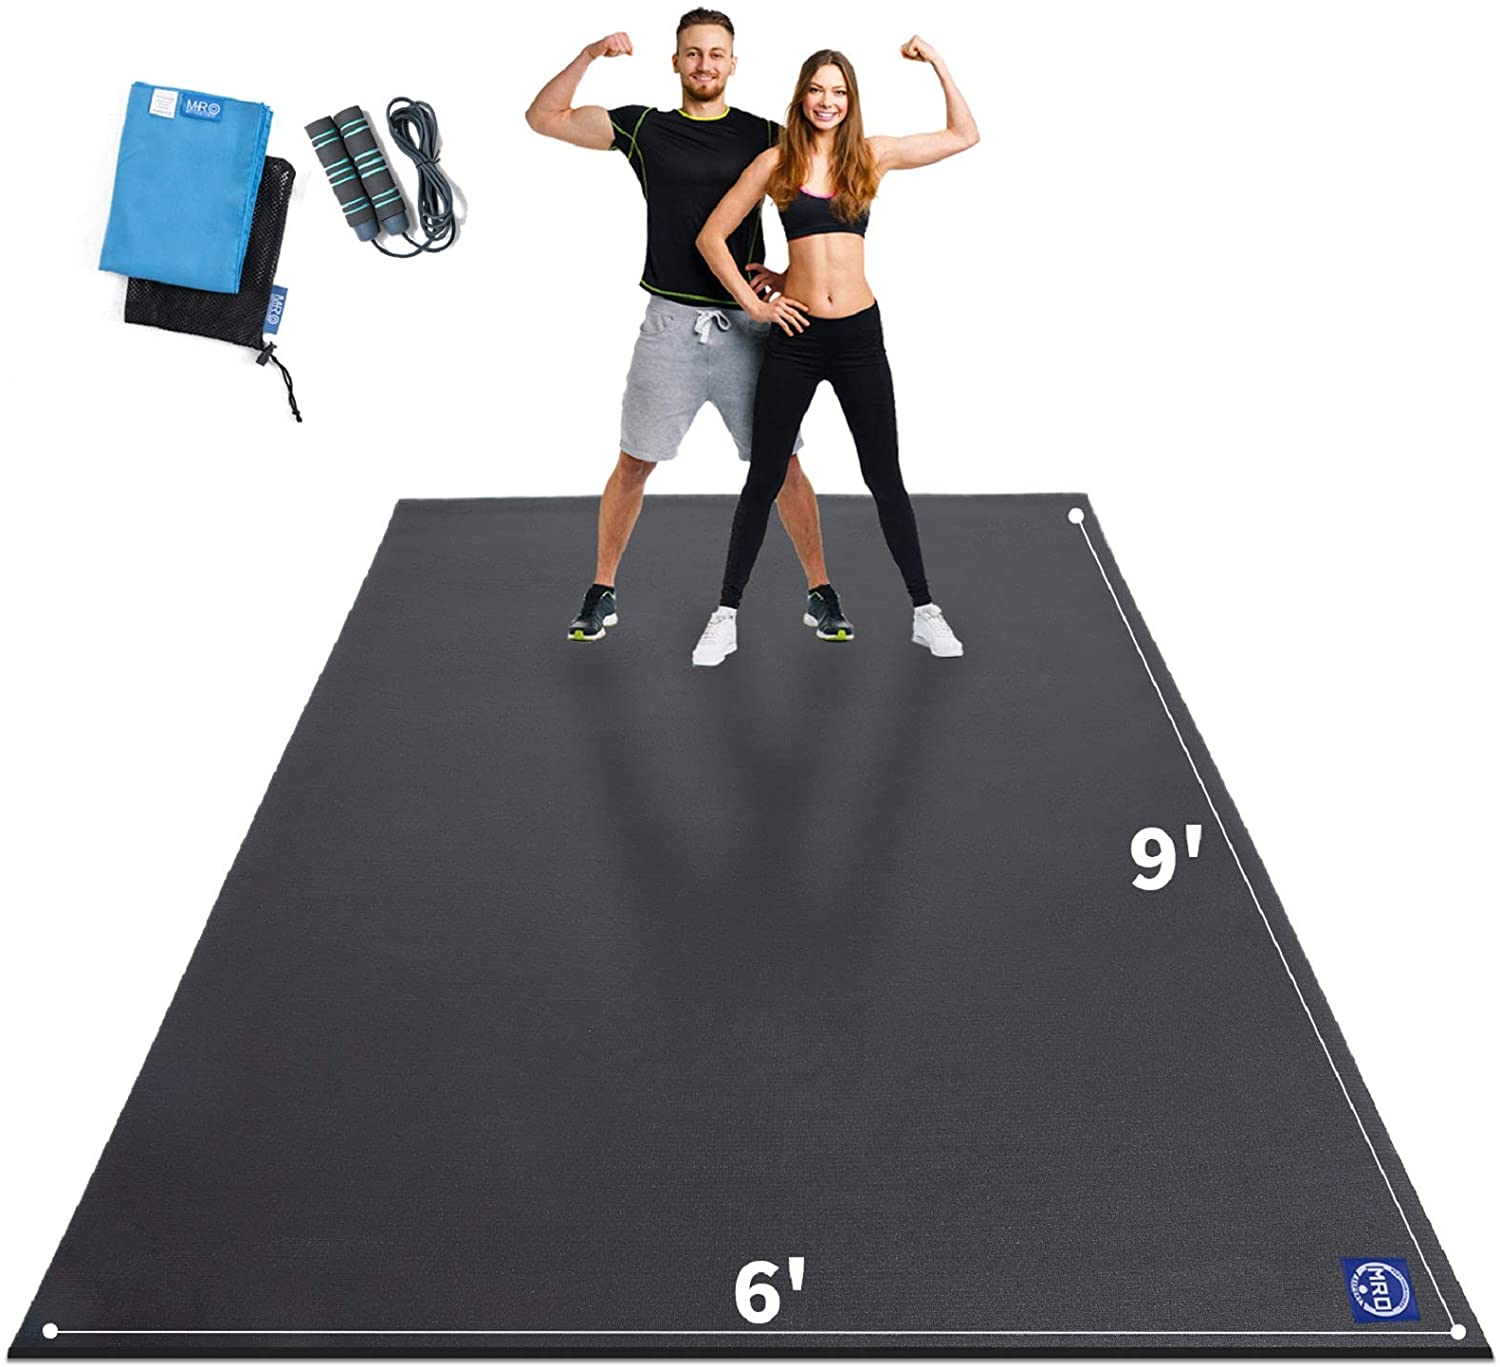 Extra Large Exercise Mat 9' x 6' x 7mm, High-Density Workout Mats for Home Gym Flooring, Non-Slip, Extra Thick Durable Cardio Mat, Ideal for Plyo, MMA, Jump Rope - Shoe Friendly